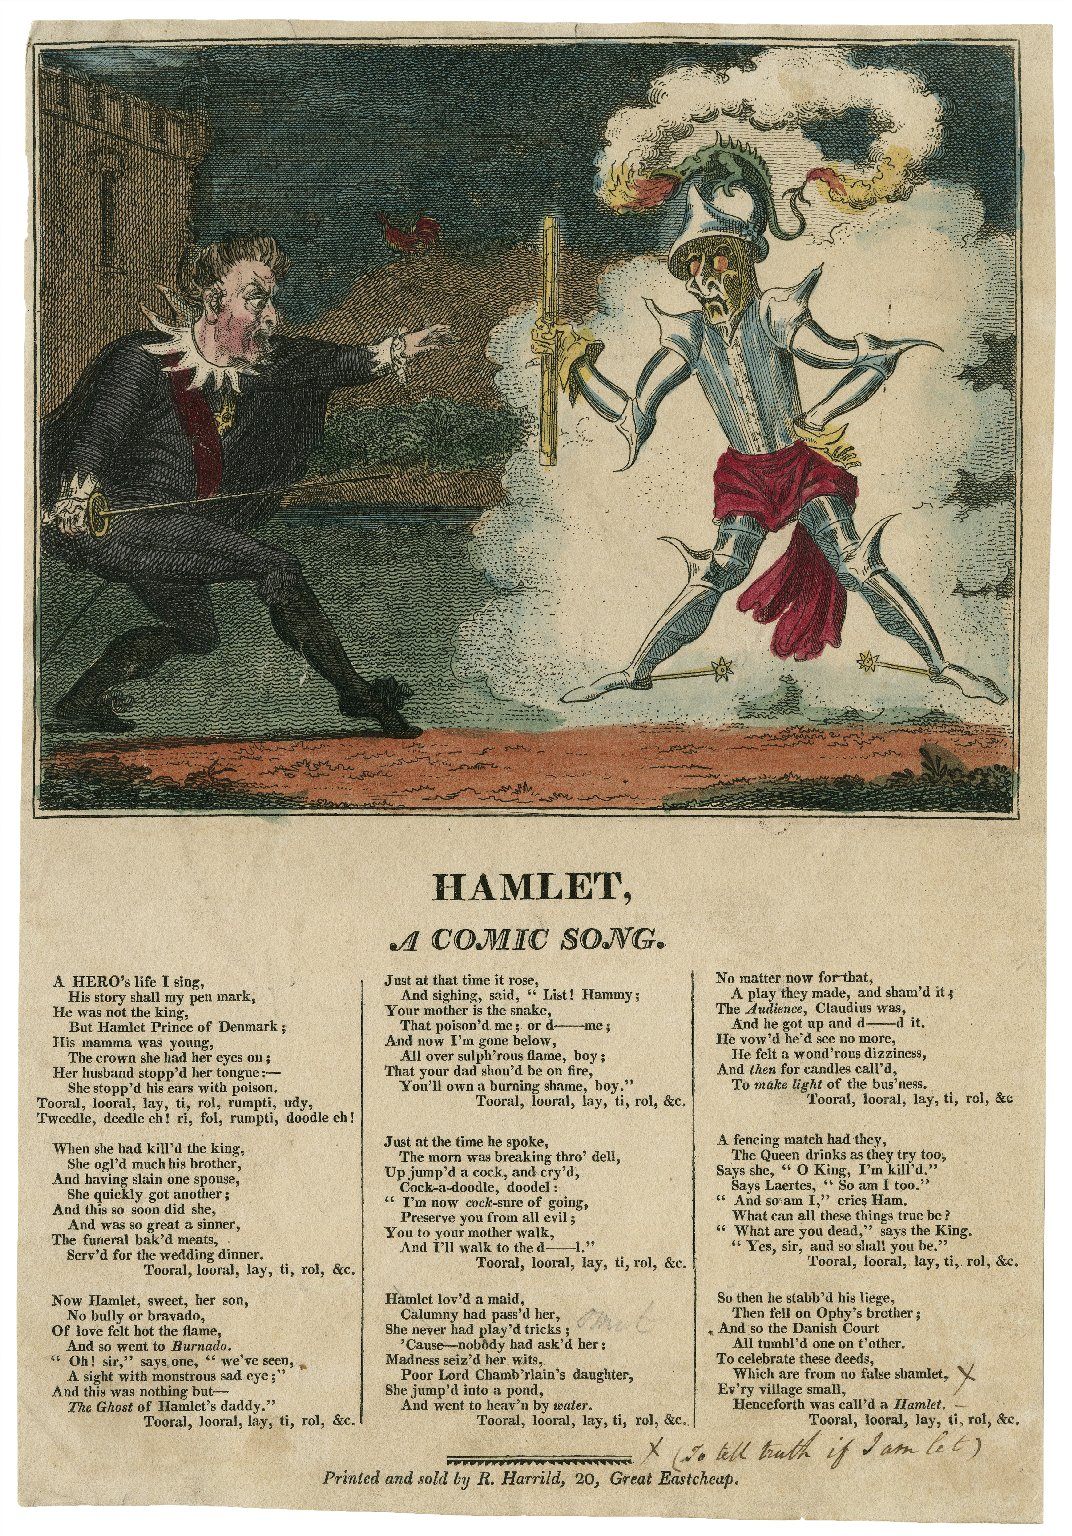 Hamlet, a comic song ... [graphic].